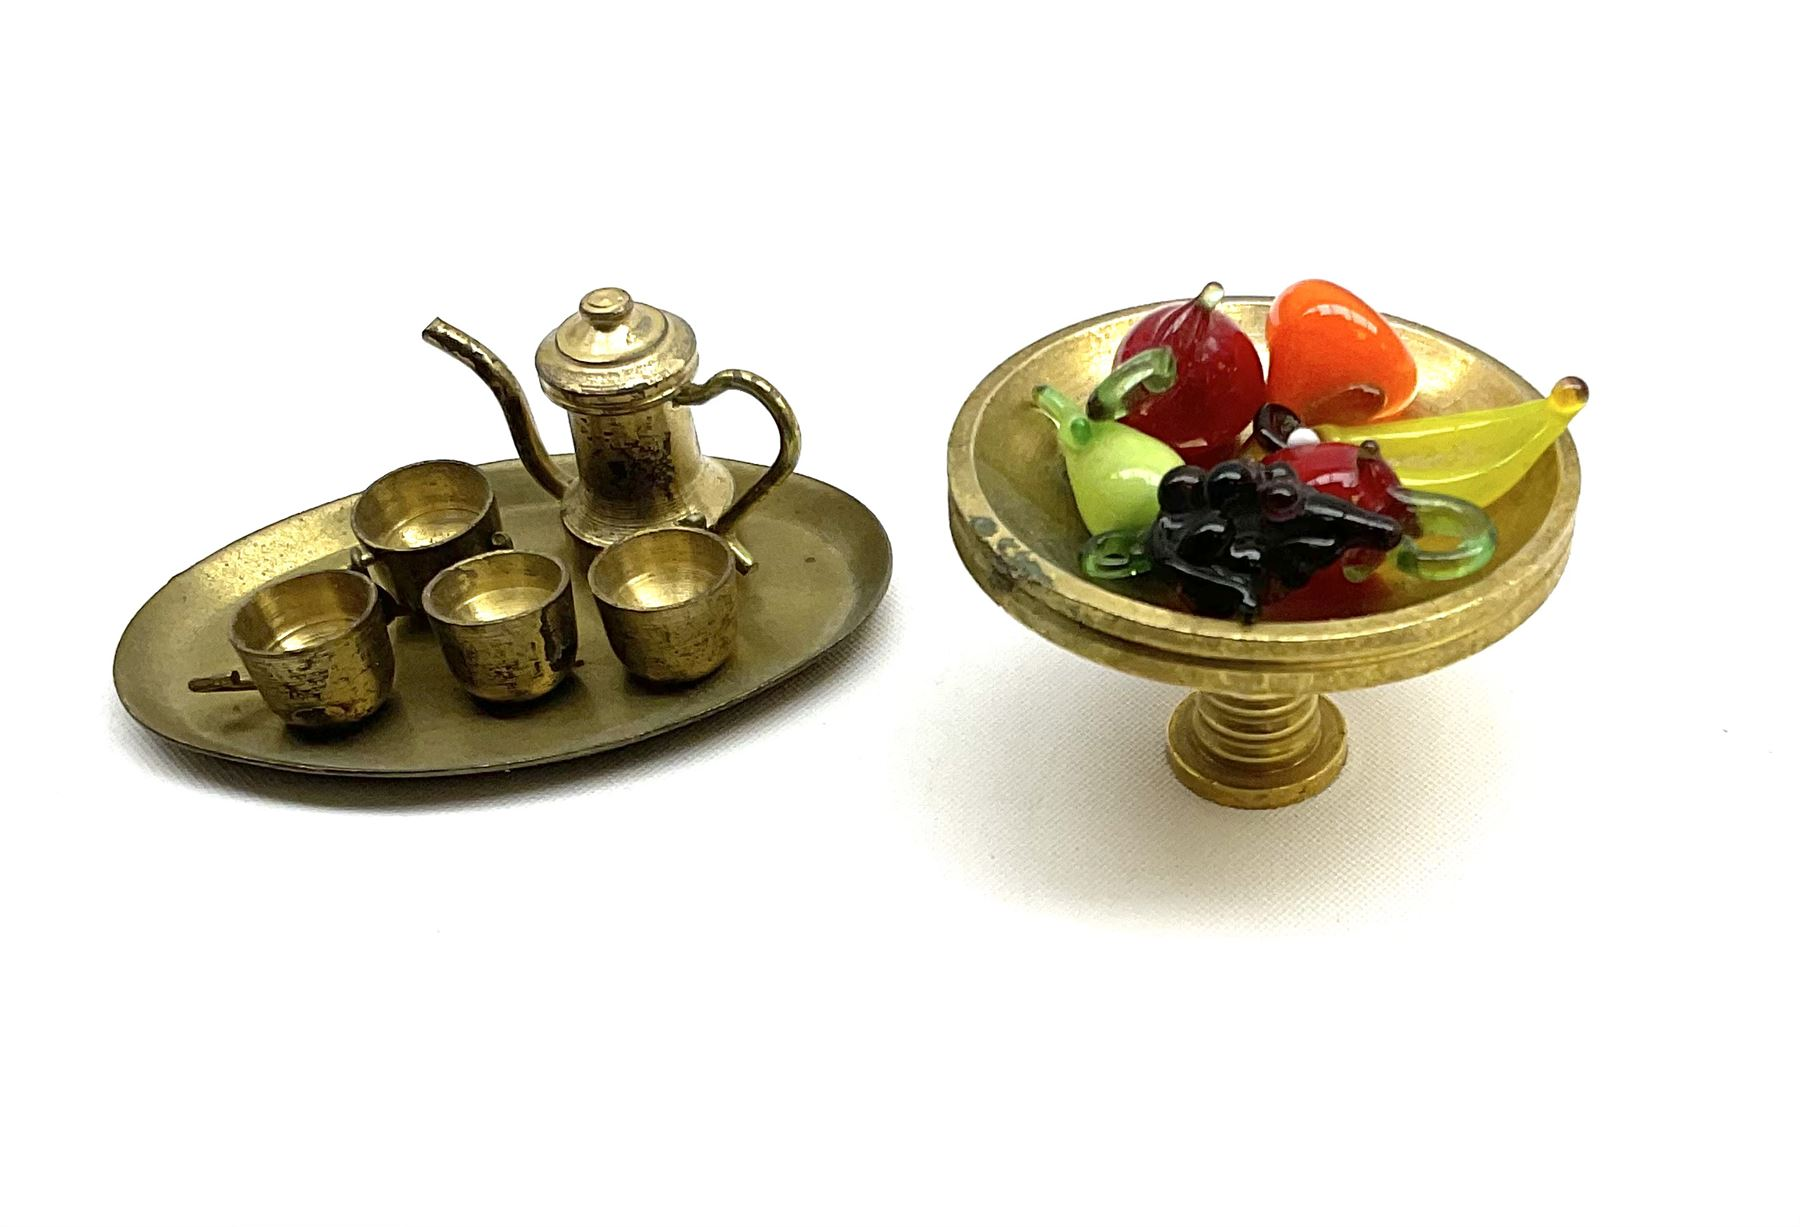 Over one-hundred various scale miniature brass ornaments suitable for decorating doll's houses inclu - Image 8 of 10